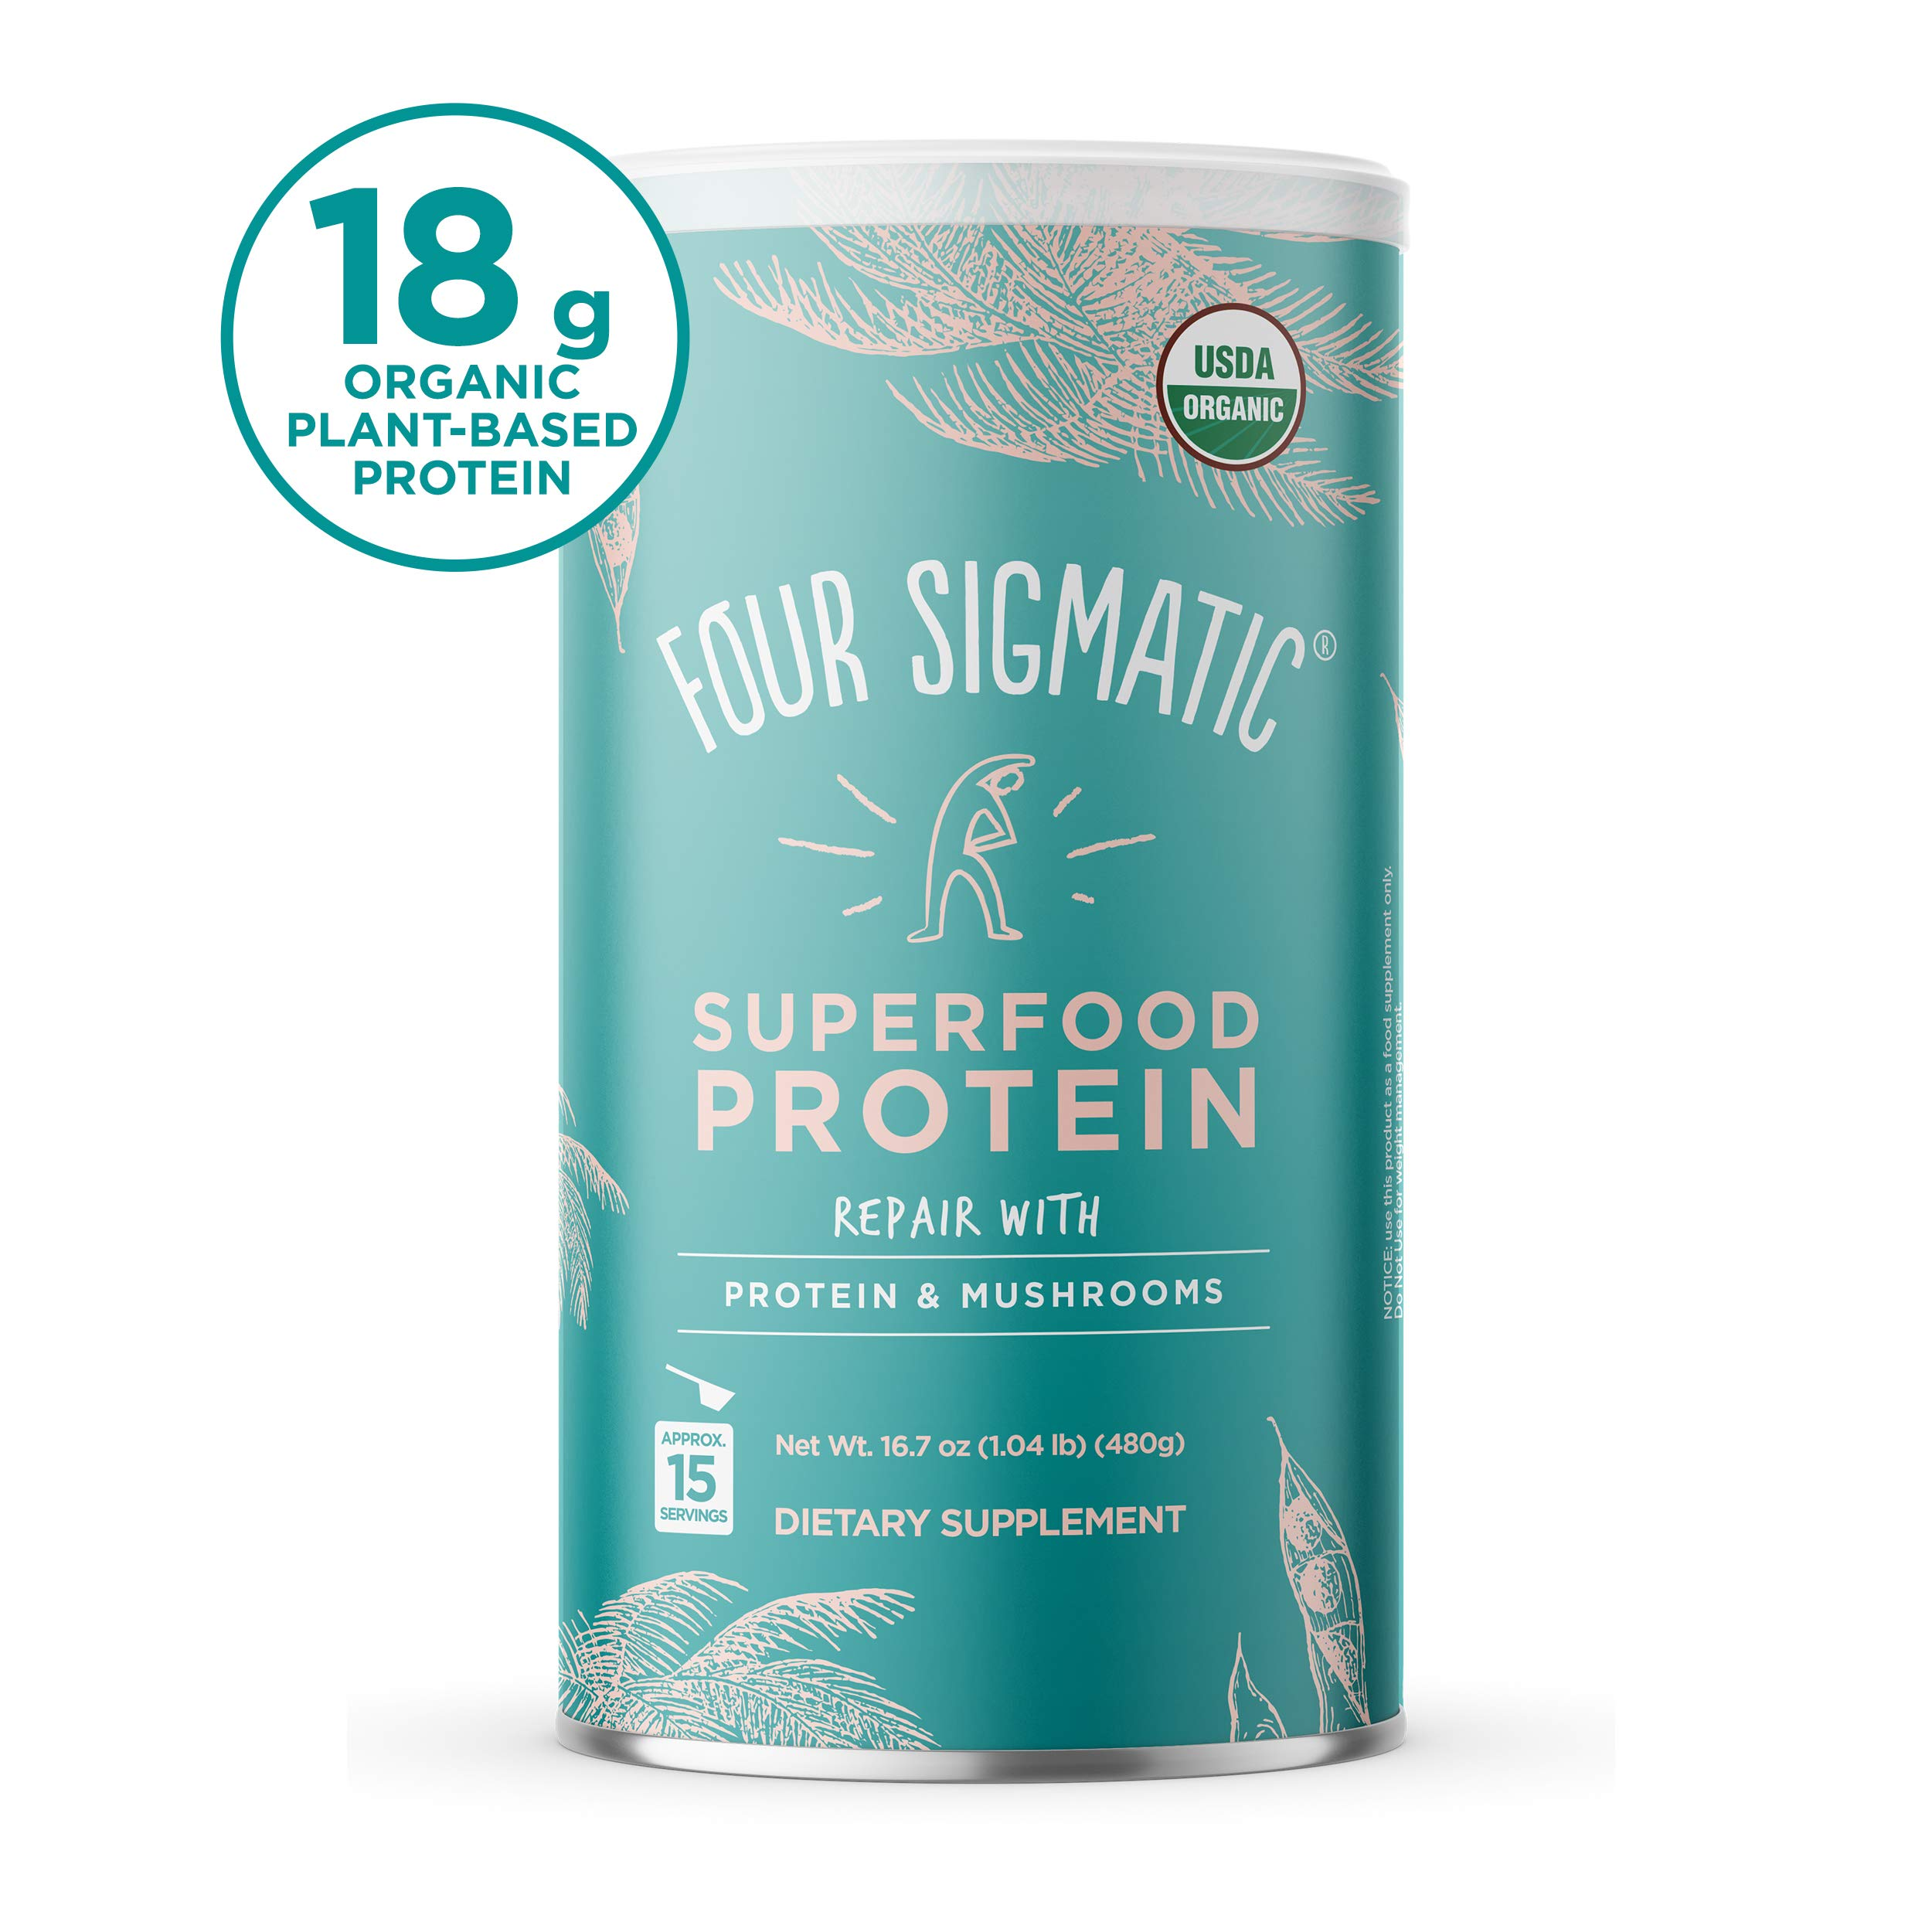 Four Sigmatic - Superfood Protein with Mushrooms & Adaptogens, Natural Plant Based Protein, Vegan, Dairy-Free, Gluten-Free, No Fillers or Gums, 16.7 Oz, 15 Servings by Four Sigmatic